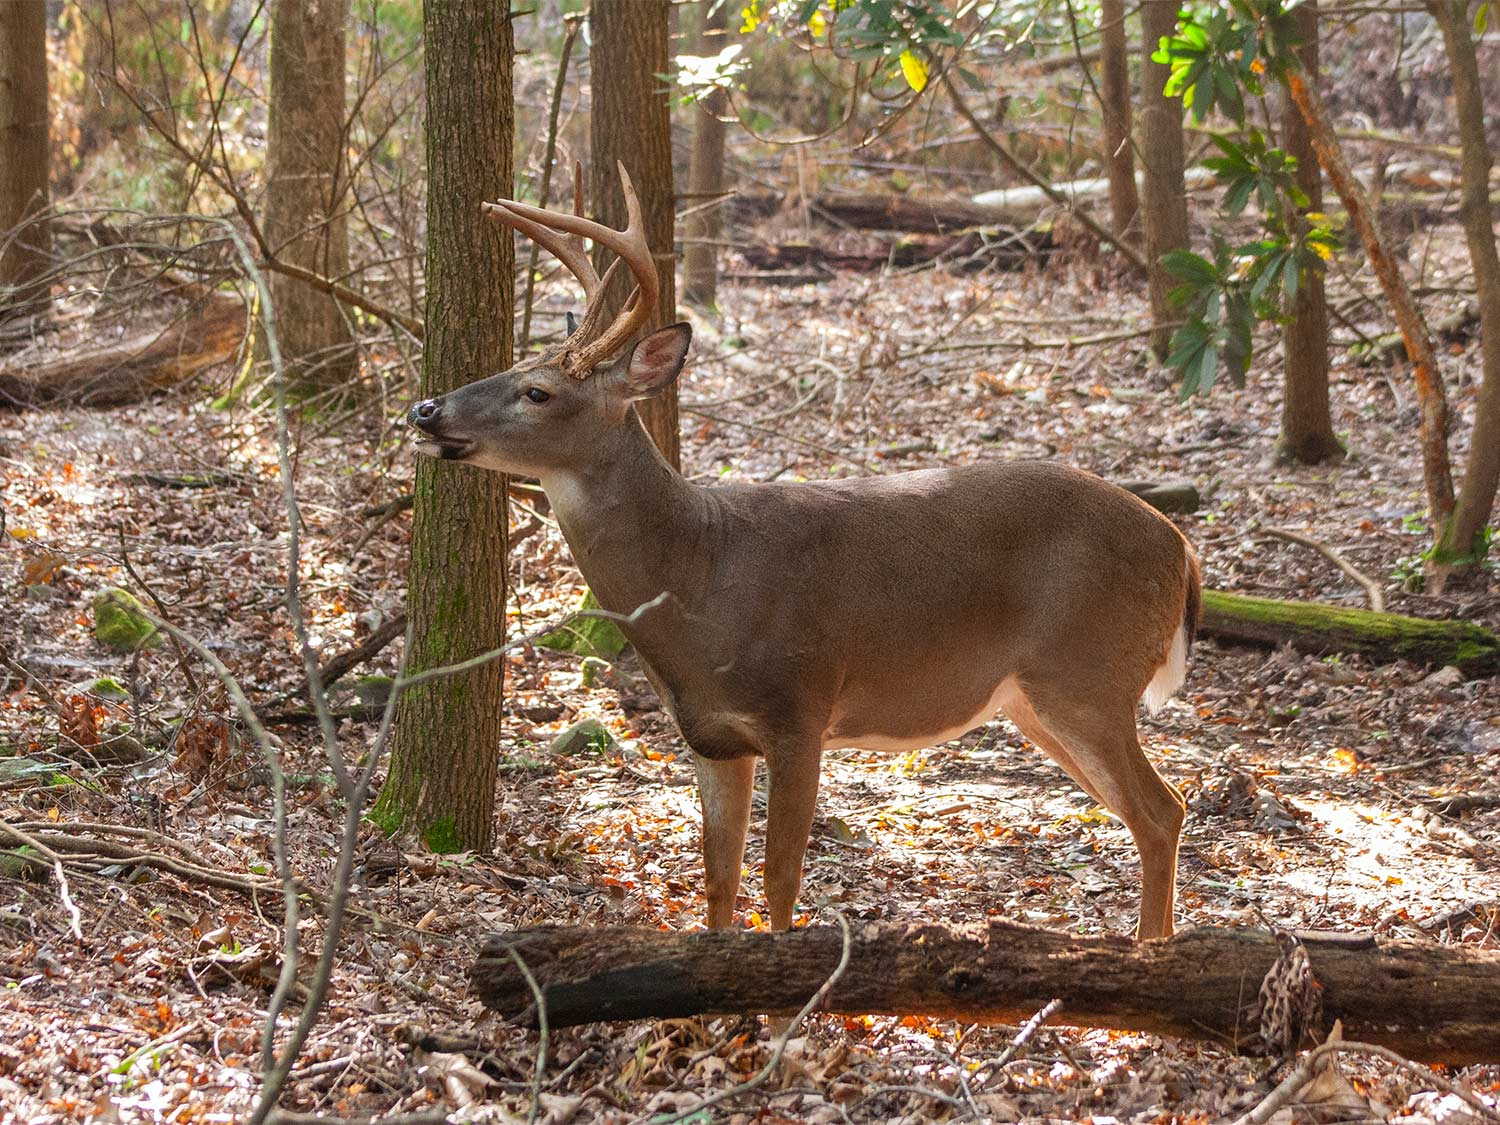 A whitetail buck walks through a clearing in the woods.